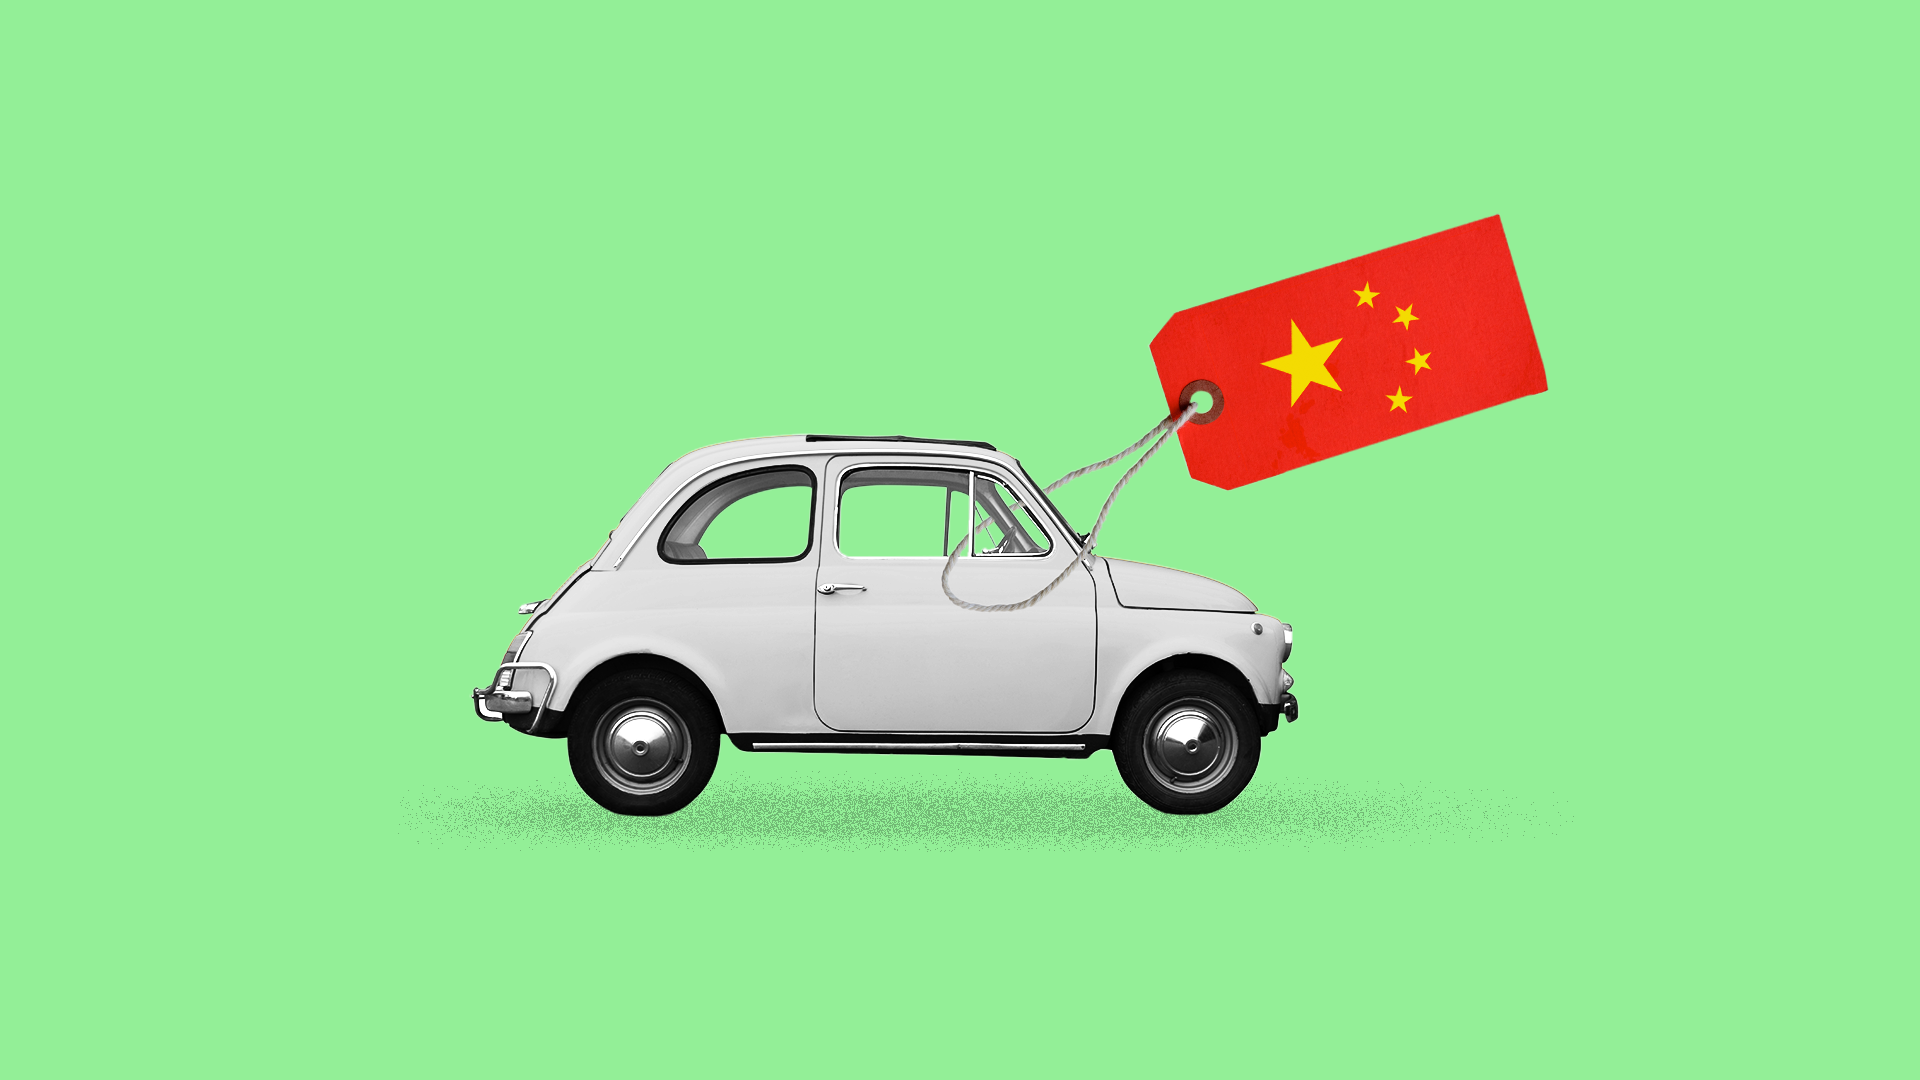 Illustration of a car with a price tag made of the Chinese flag